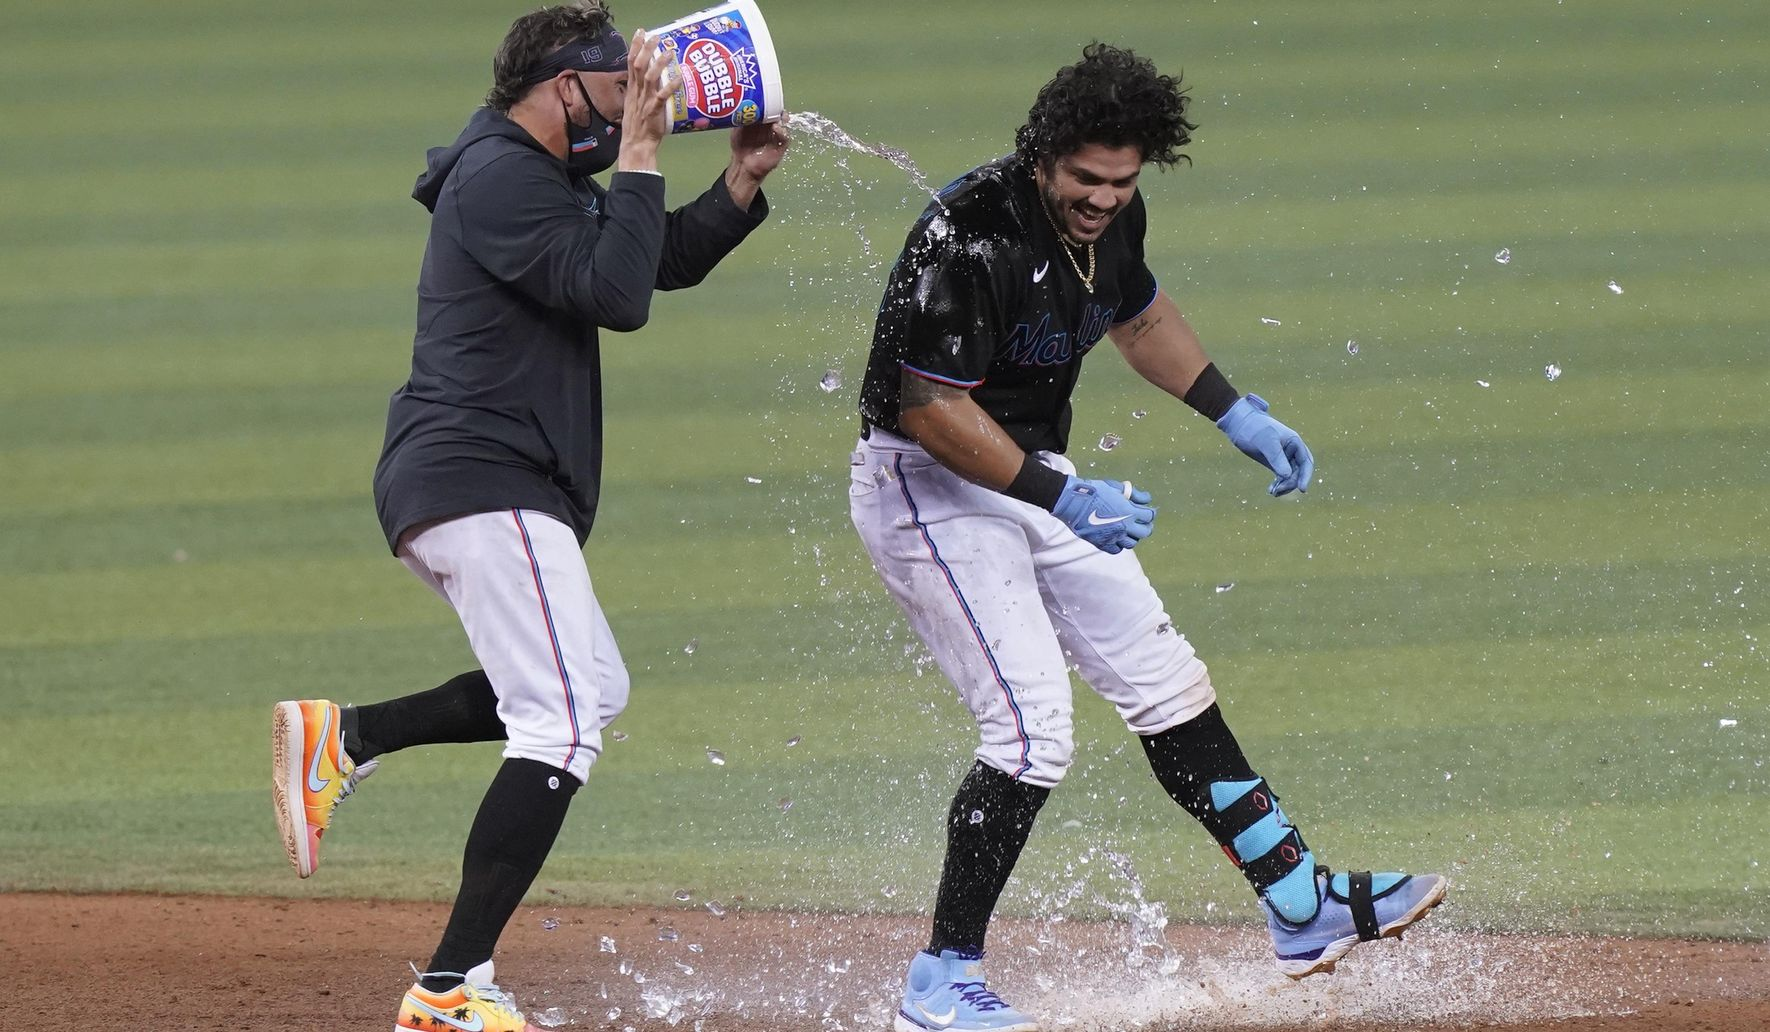 Giants_marlins_baseball_43955_c0-138-3290-2056_s1770x1032